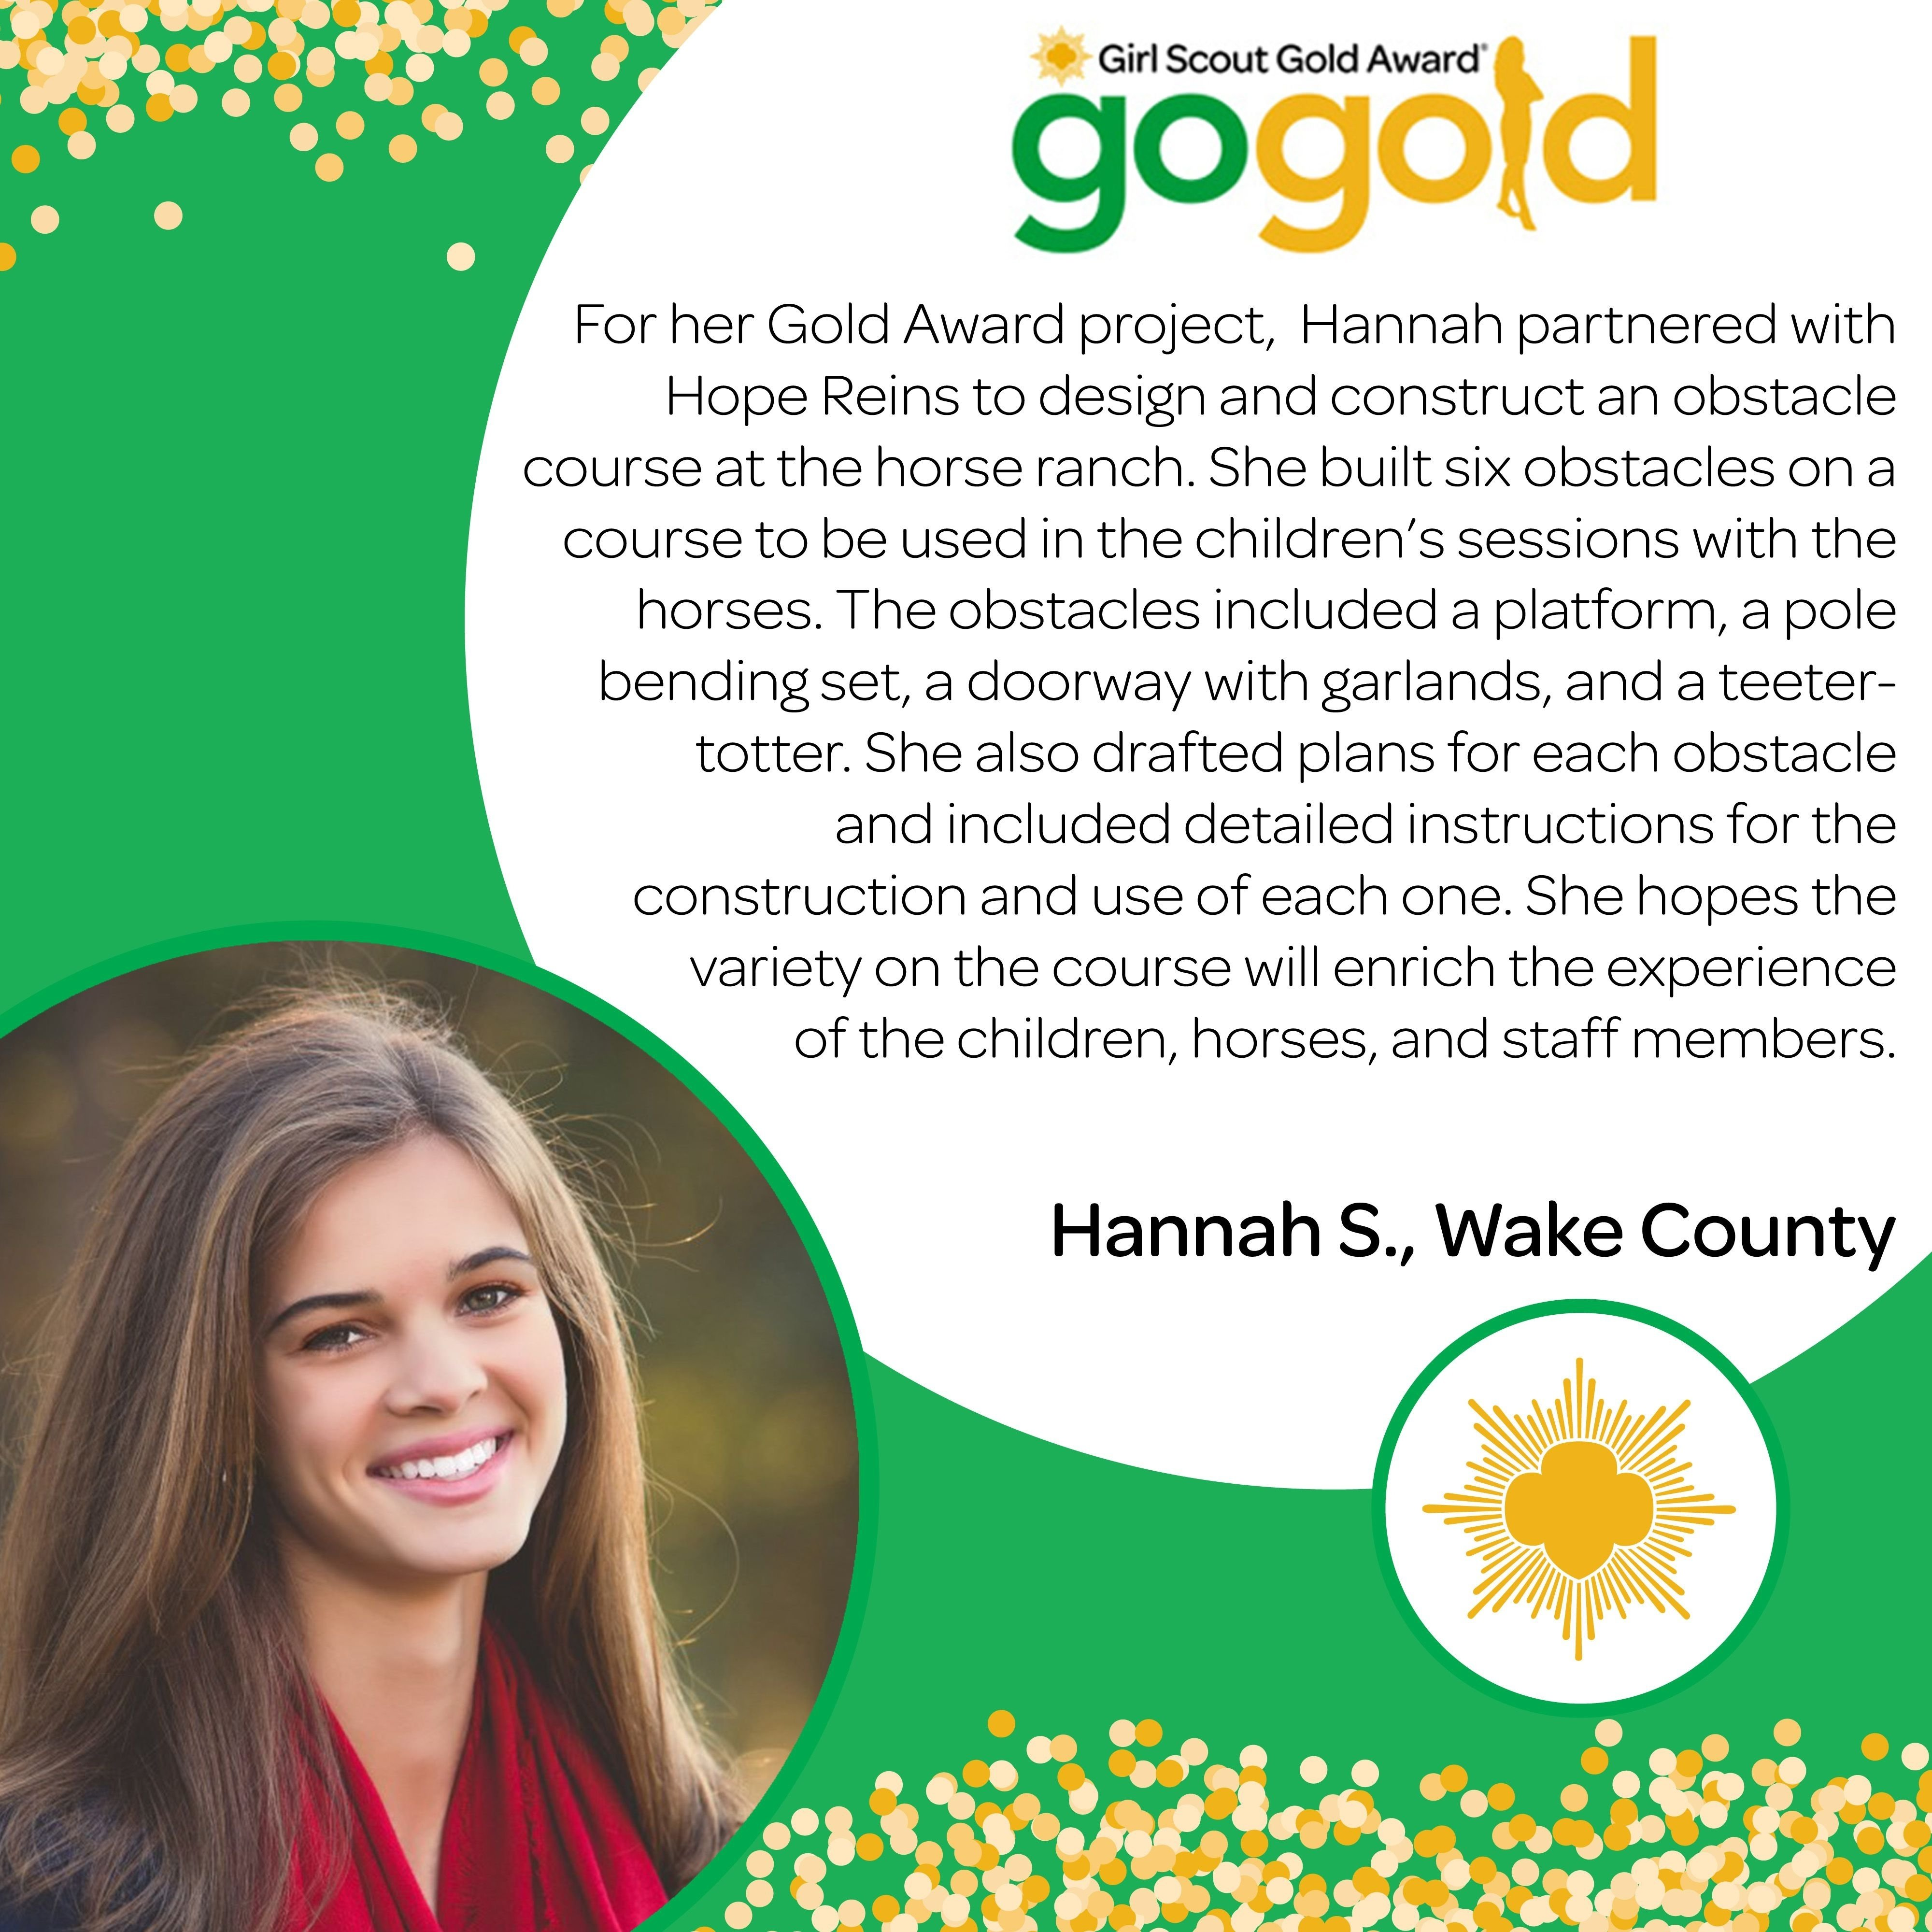 10 Elegant Girl Scout Gold Award Project Ideas thumbs up to hannah s for earning her gold award hannah created an 1 2020